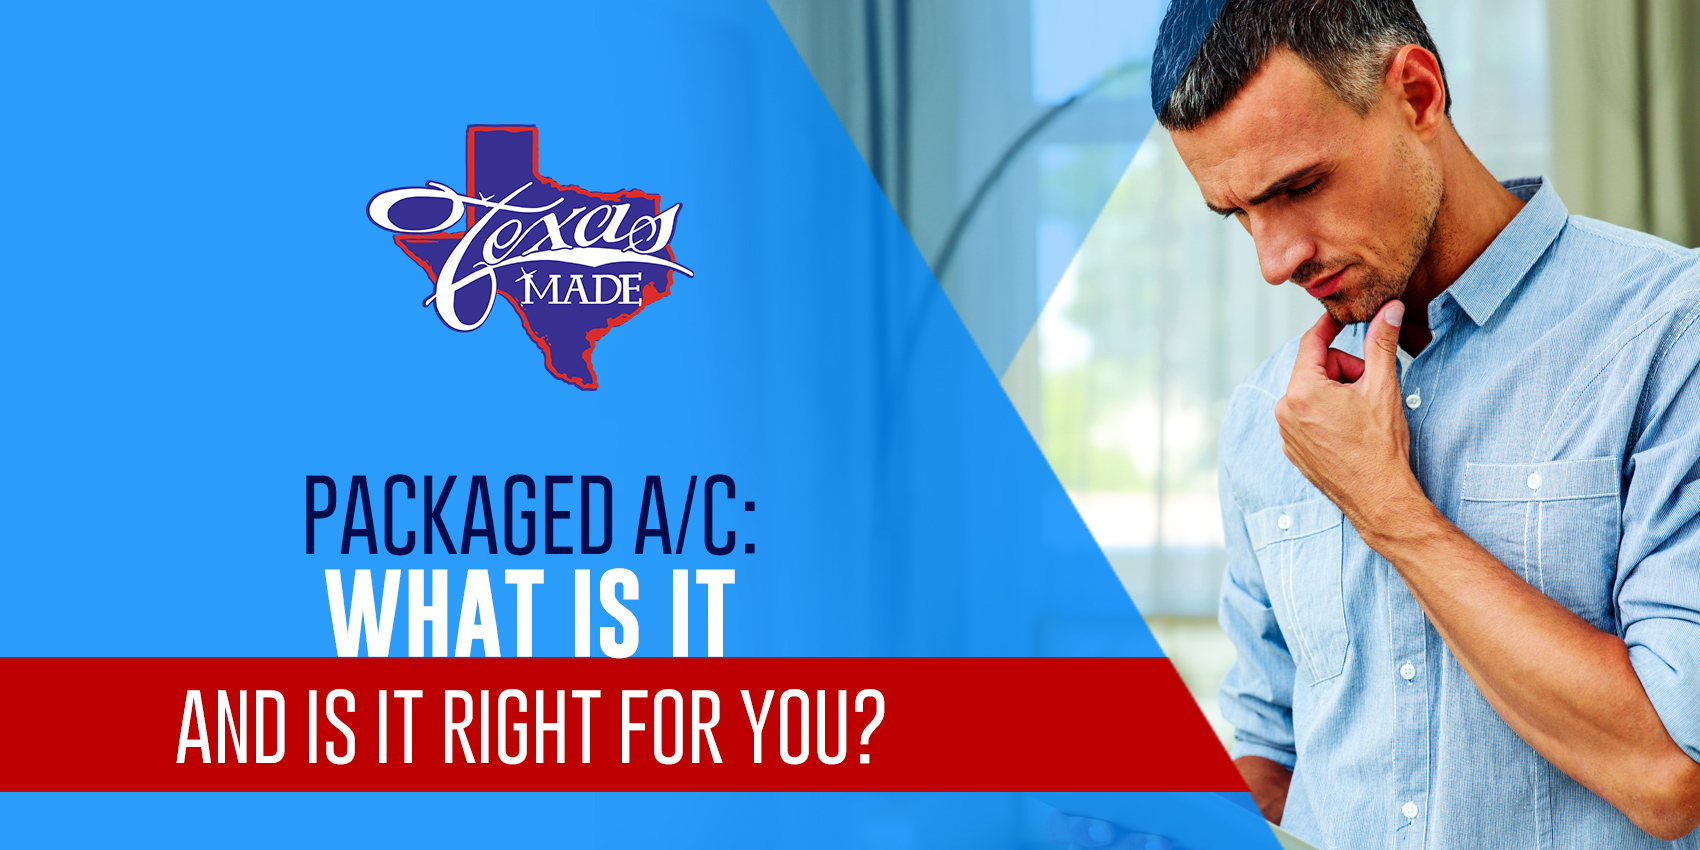 Packaged A/C Unit: What Is It and Is It Right for You?